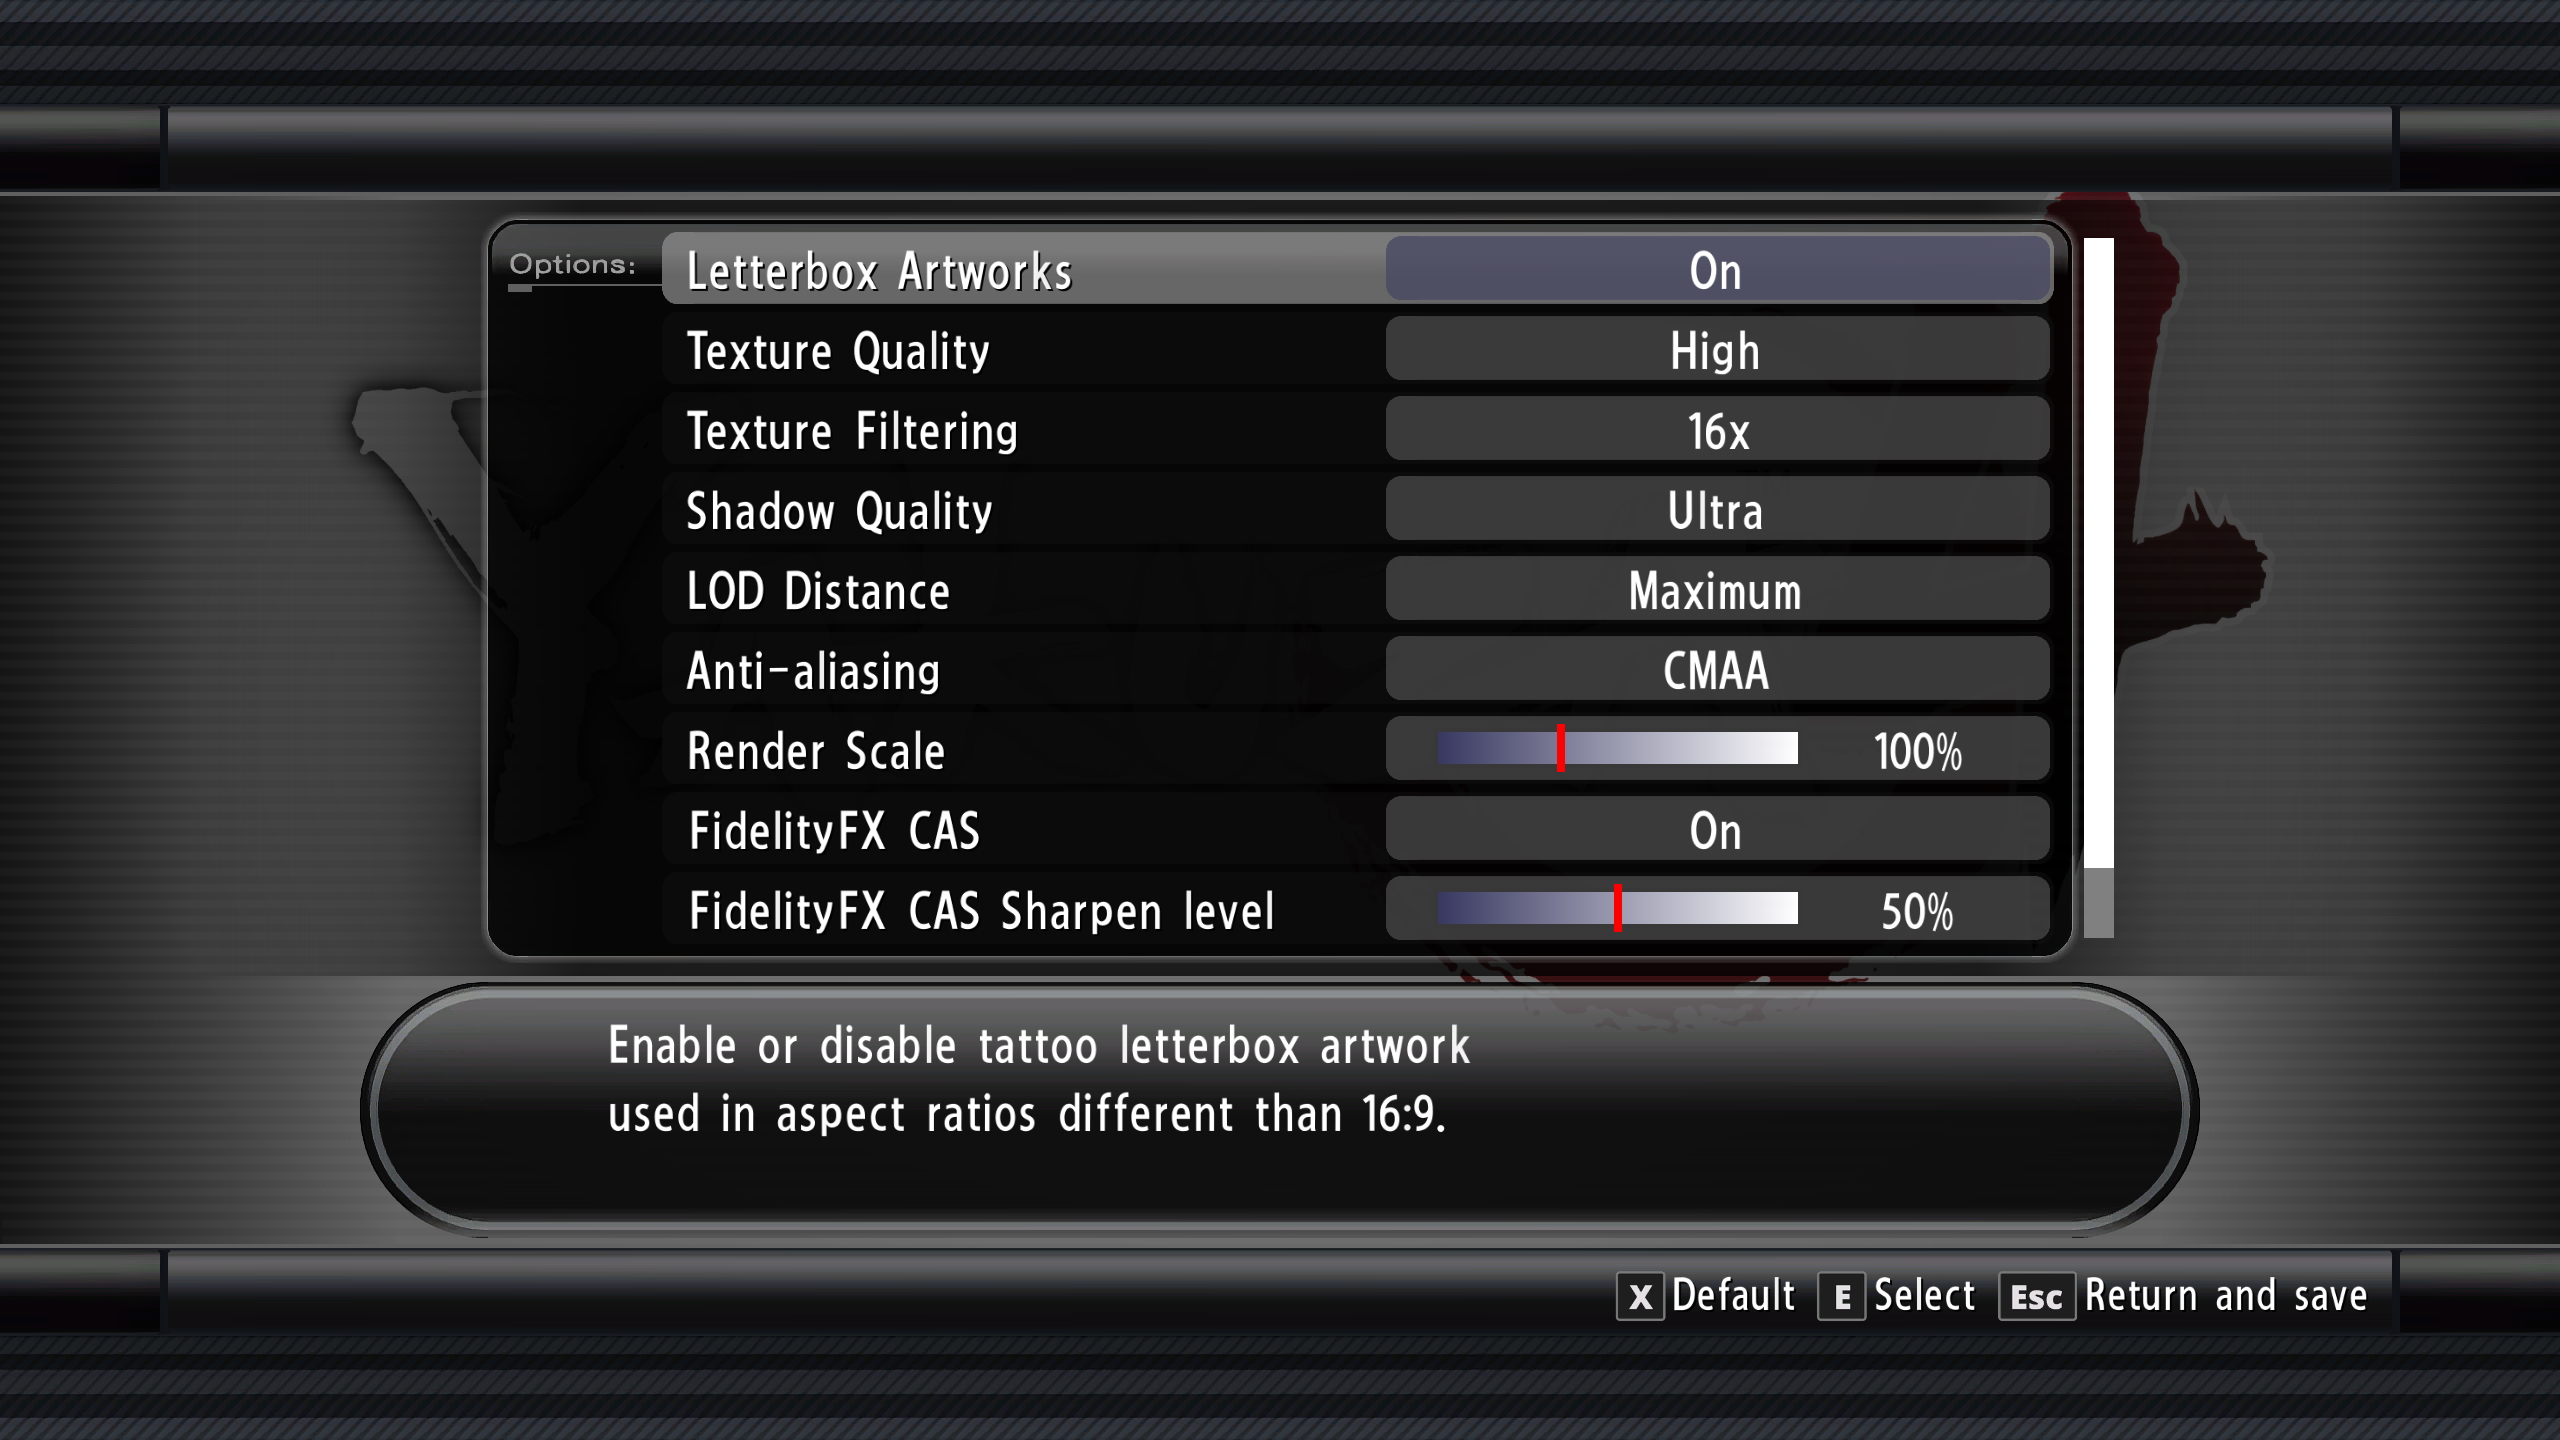 The advanced graphical options menu from Yakuza 4.